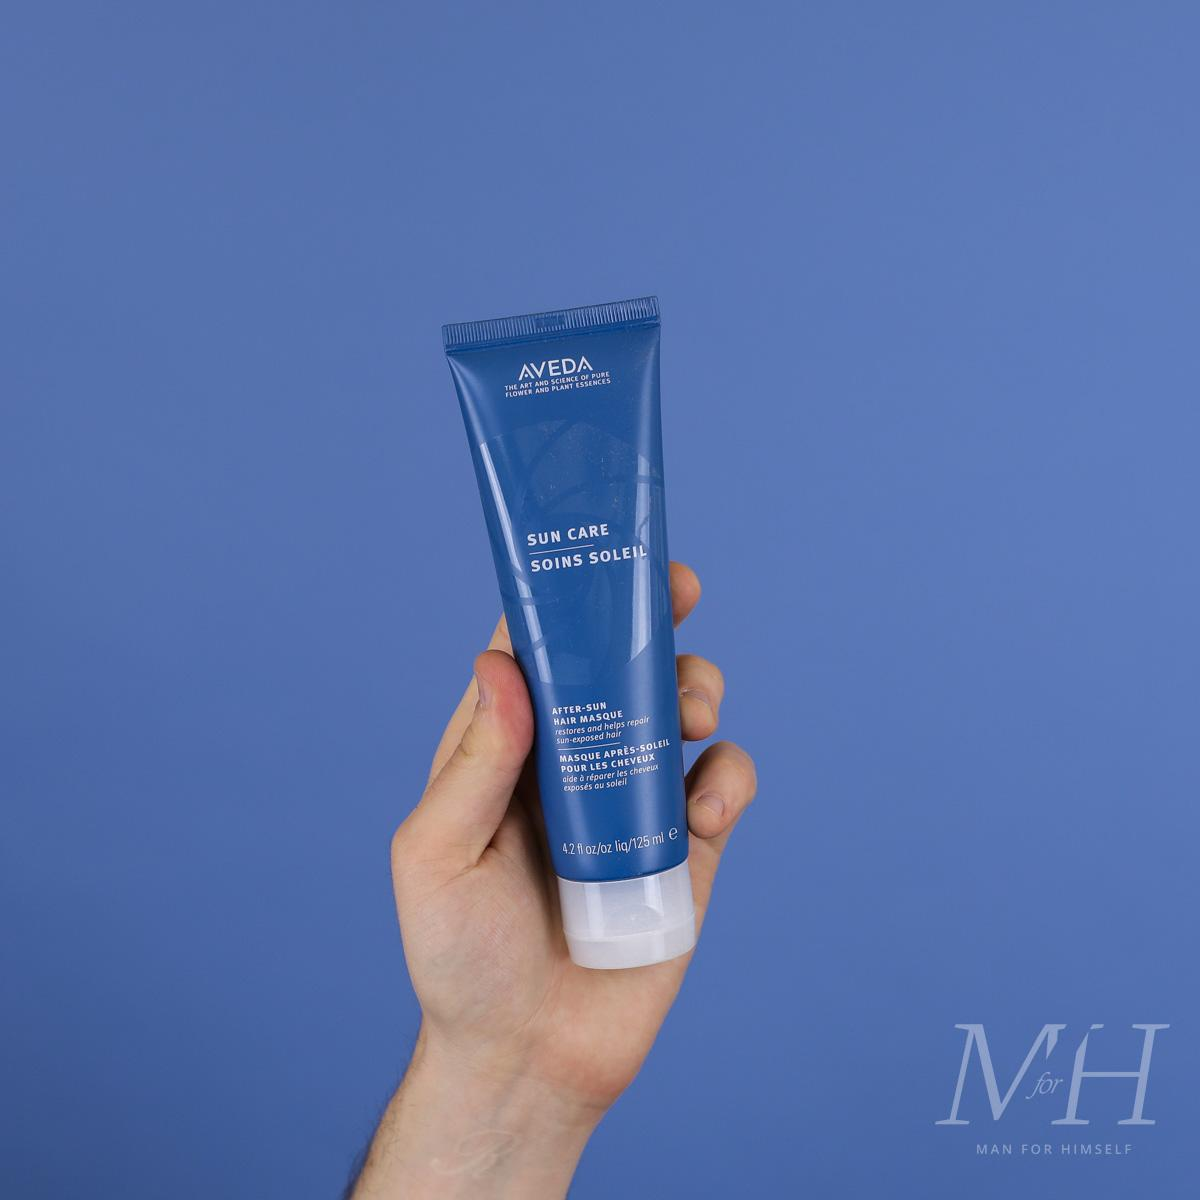 aveda-sun-care-after-sun-hair-masque-product-review-man-for-himself